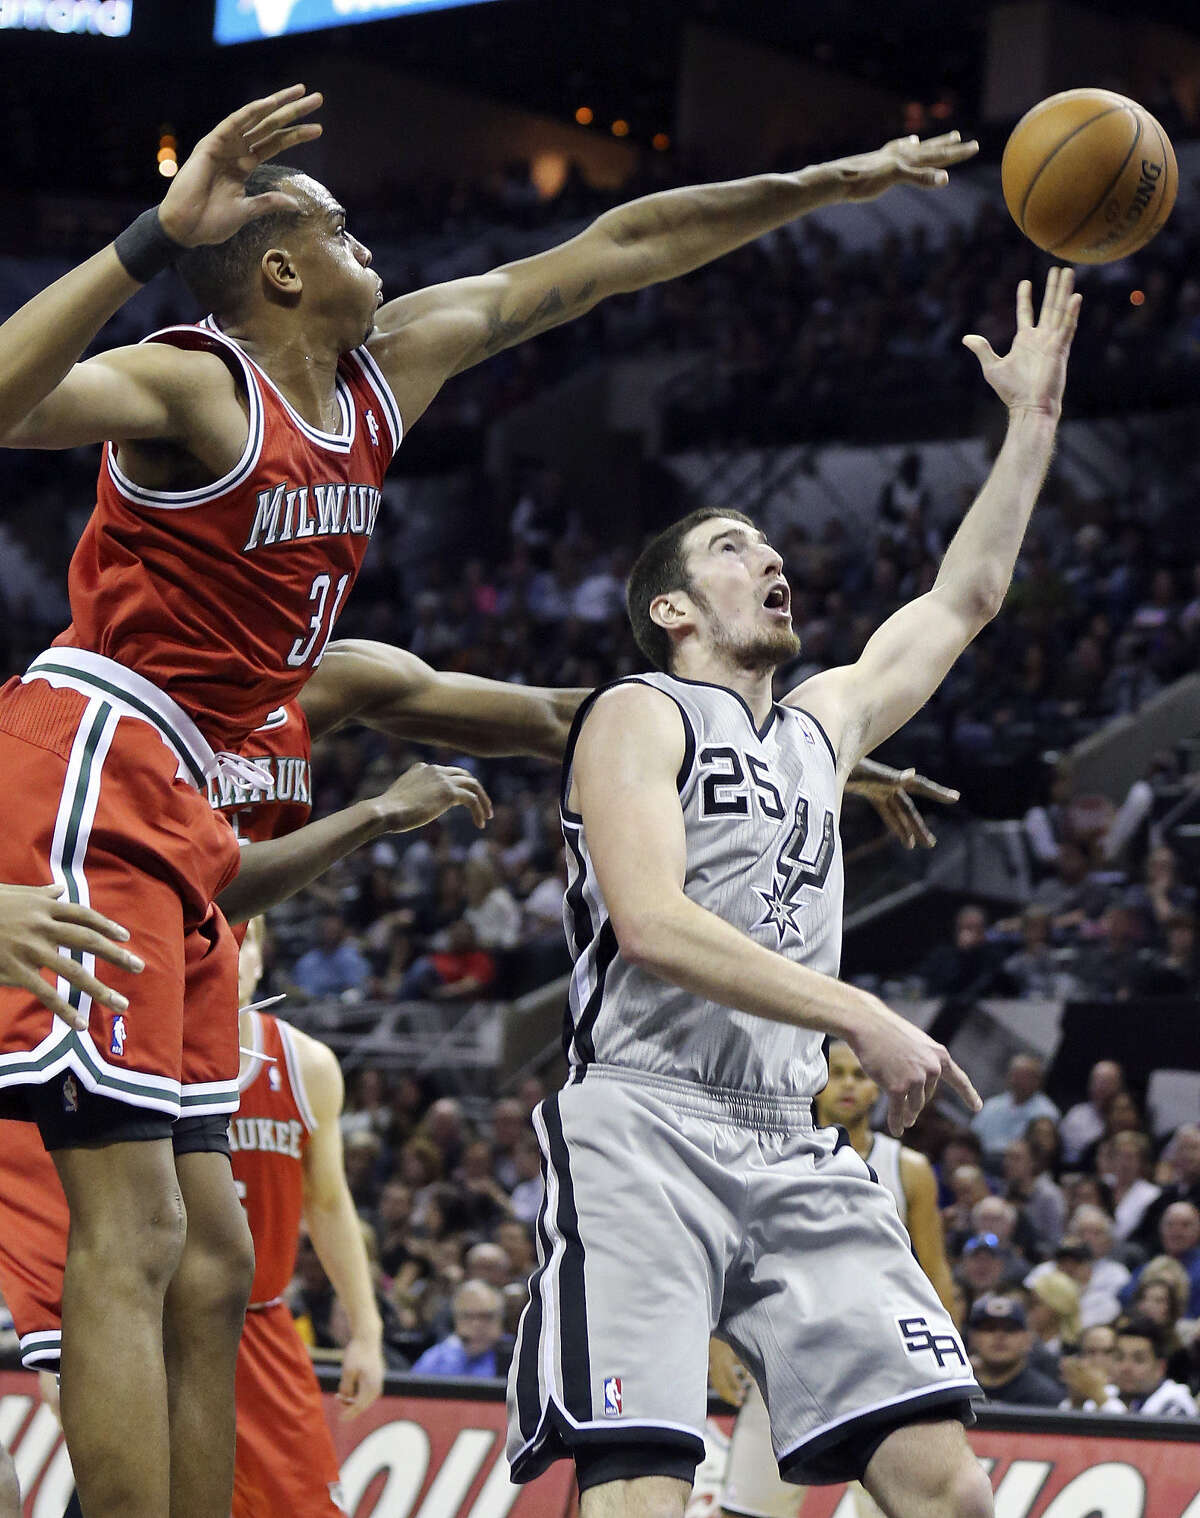 The Spurs' Nando De Colo, getting off a shot in the lane around Milwaukee's John Henson during the second half, got some rare extended playing time Sunday and finished with 13 points.